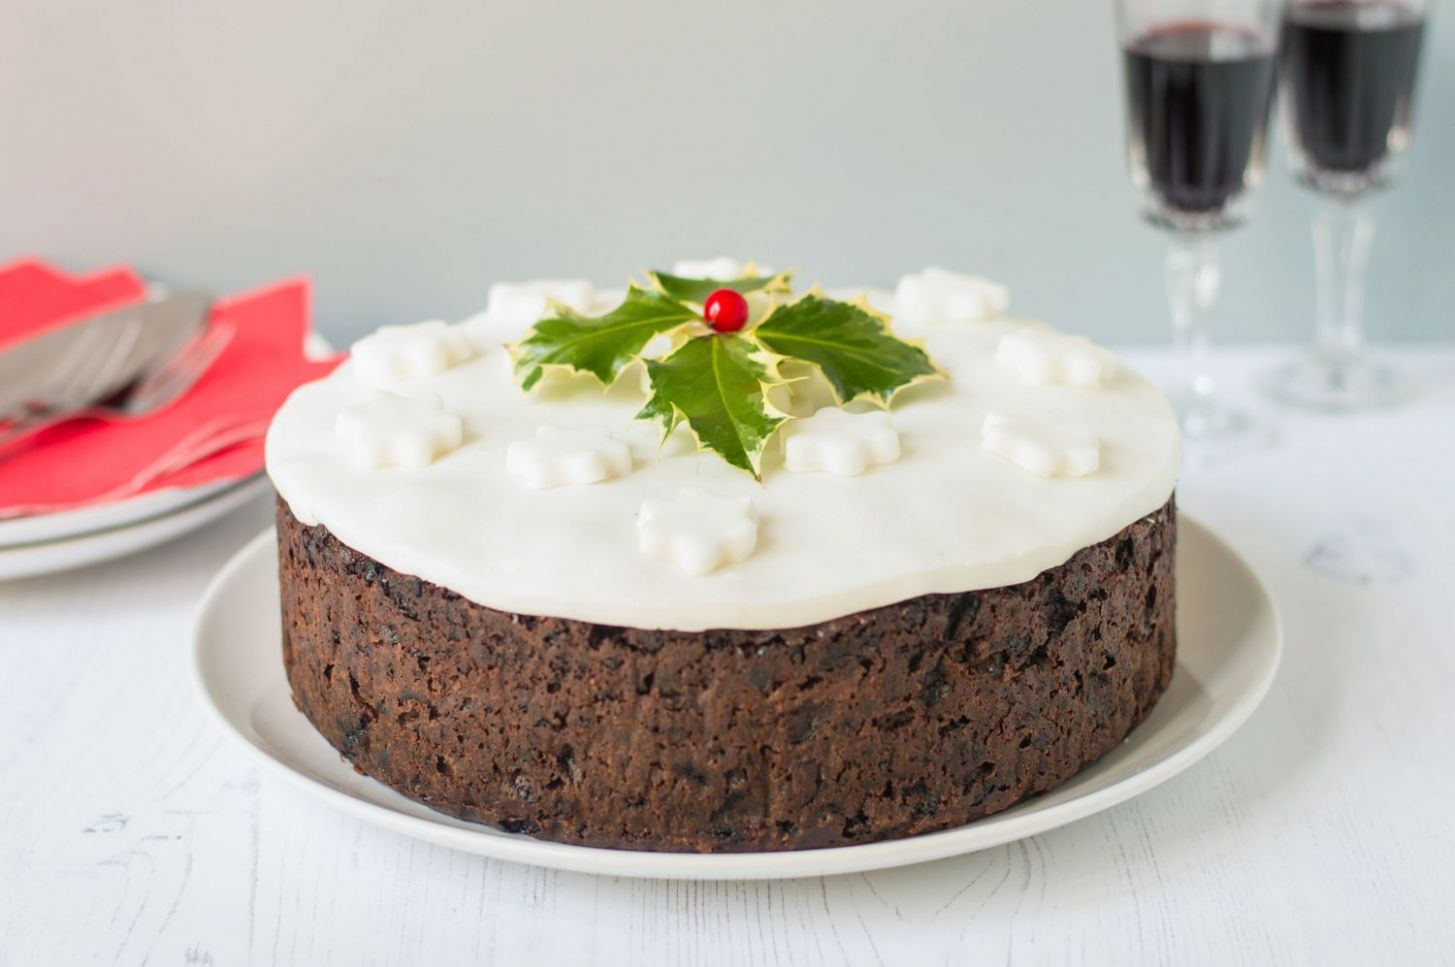 Traditional British Christmas Cake Recipe - Recipes Using Xmas Cake